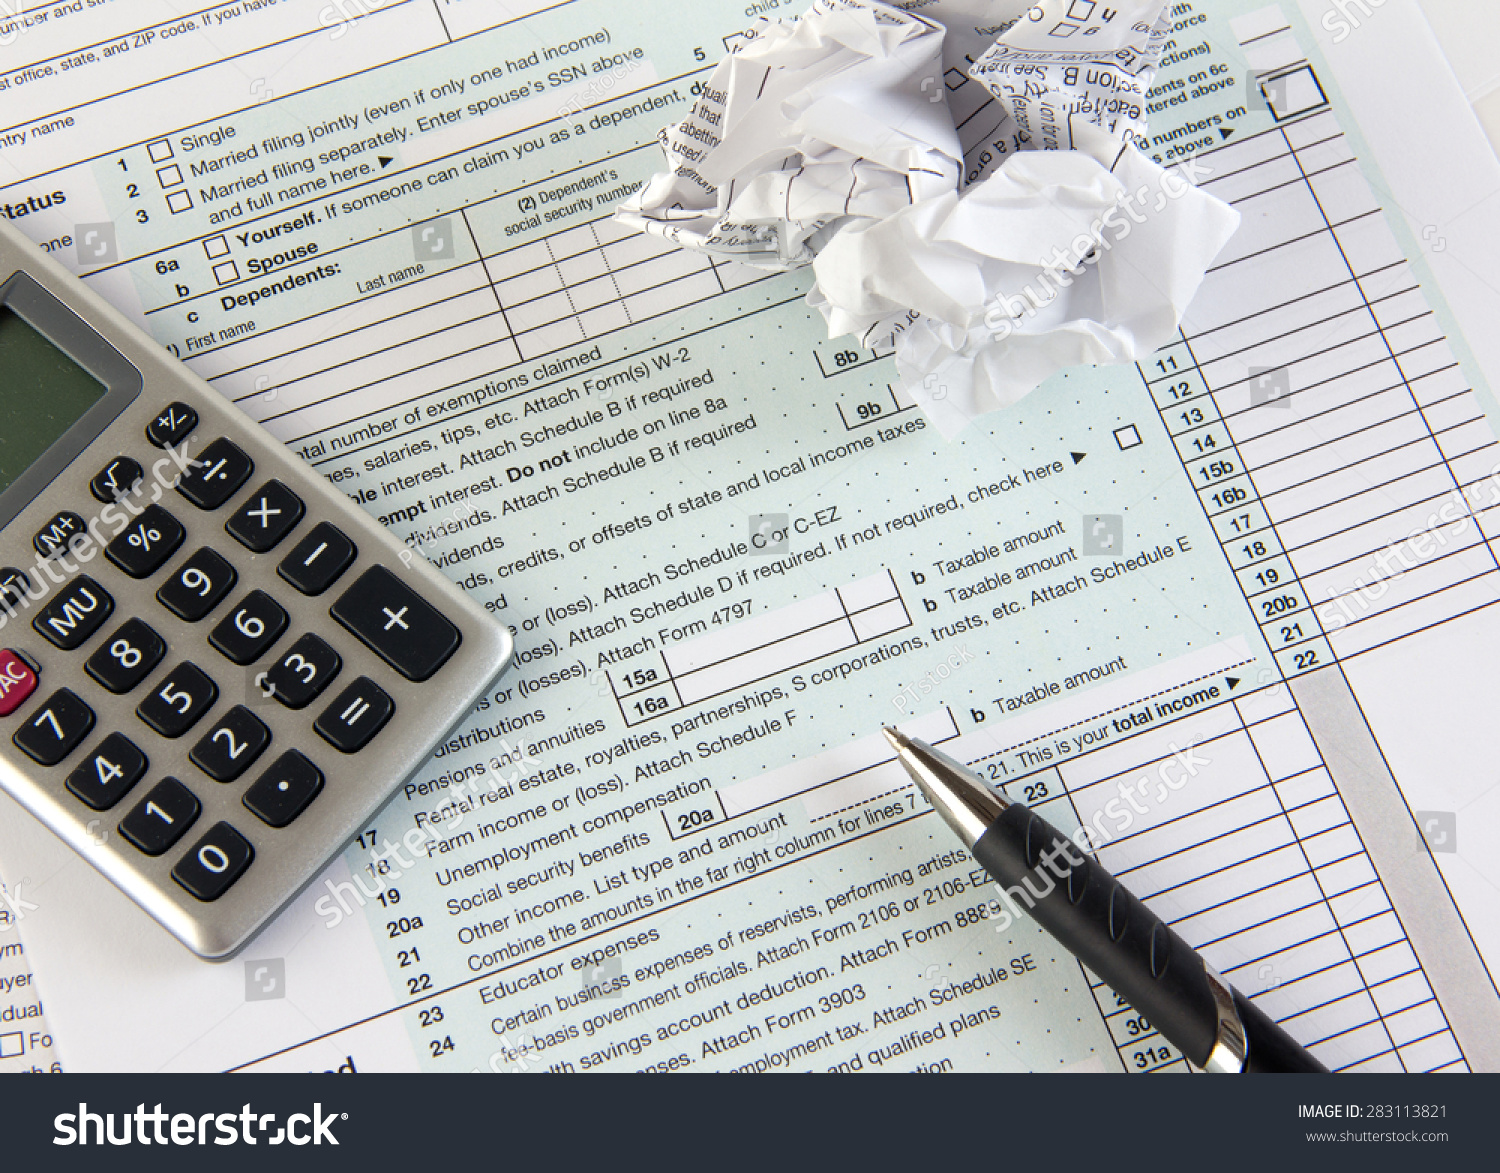 Federal income tax form 1040 crumpled stock photo for 1040 tax table calculator